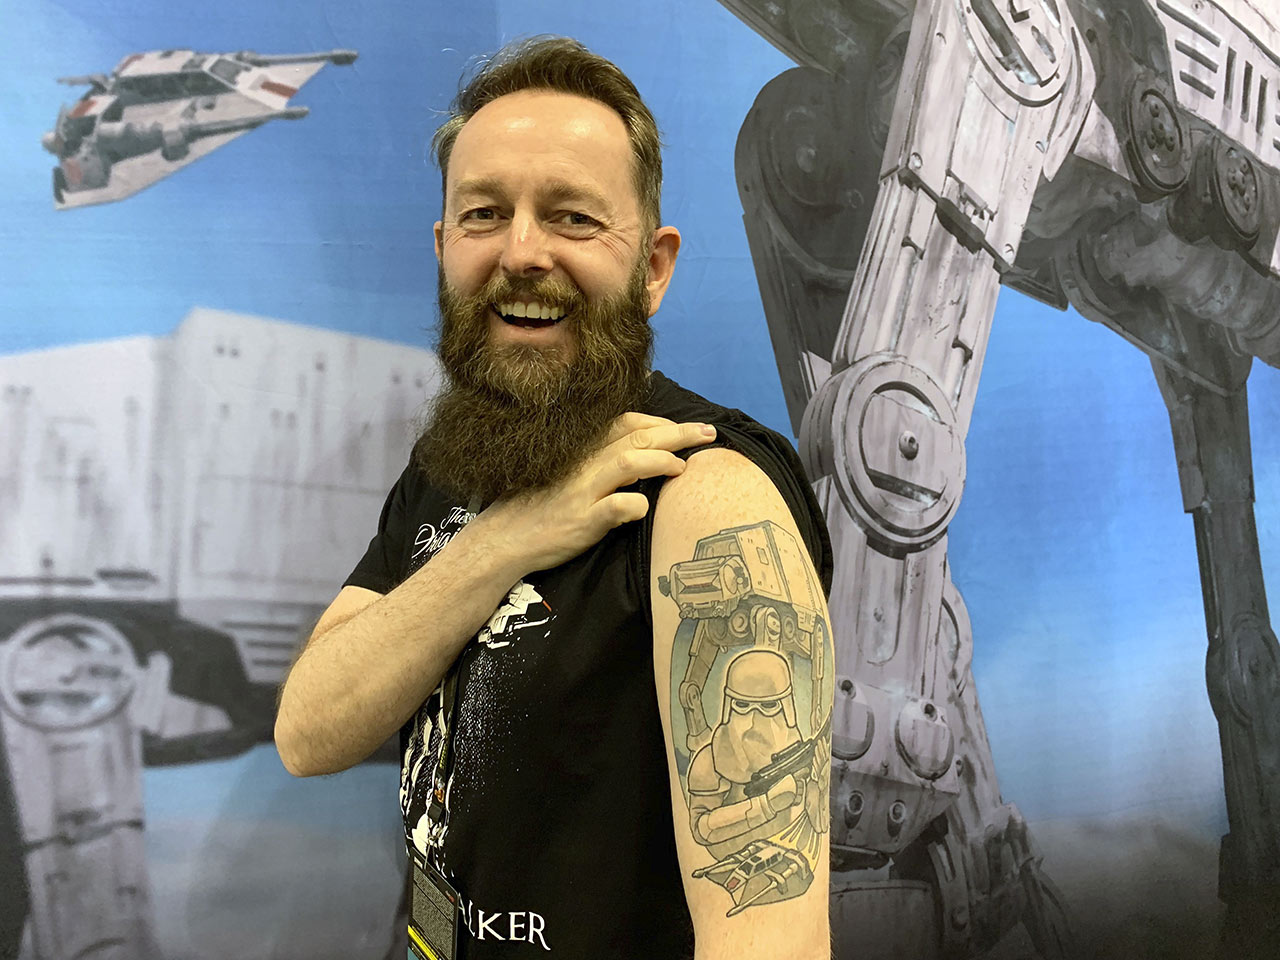 Fan Spotlight: Dale Andrew tattoo